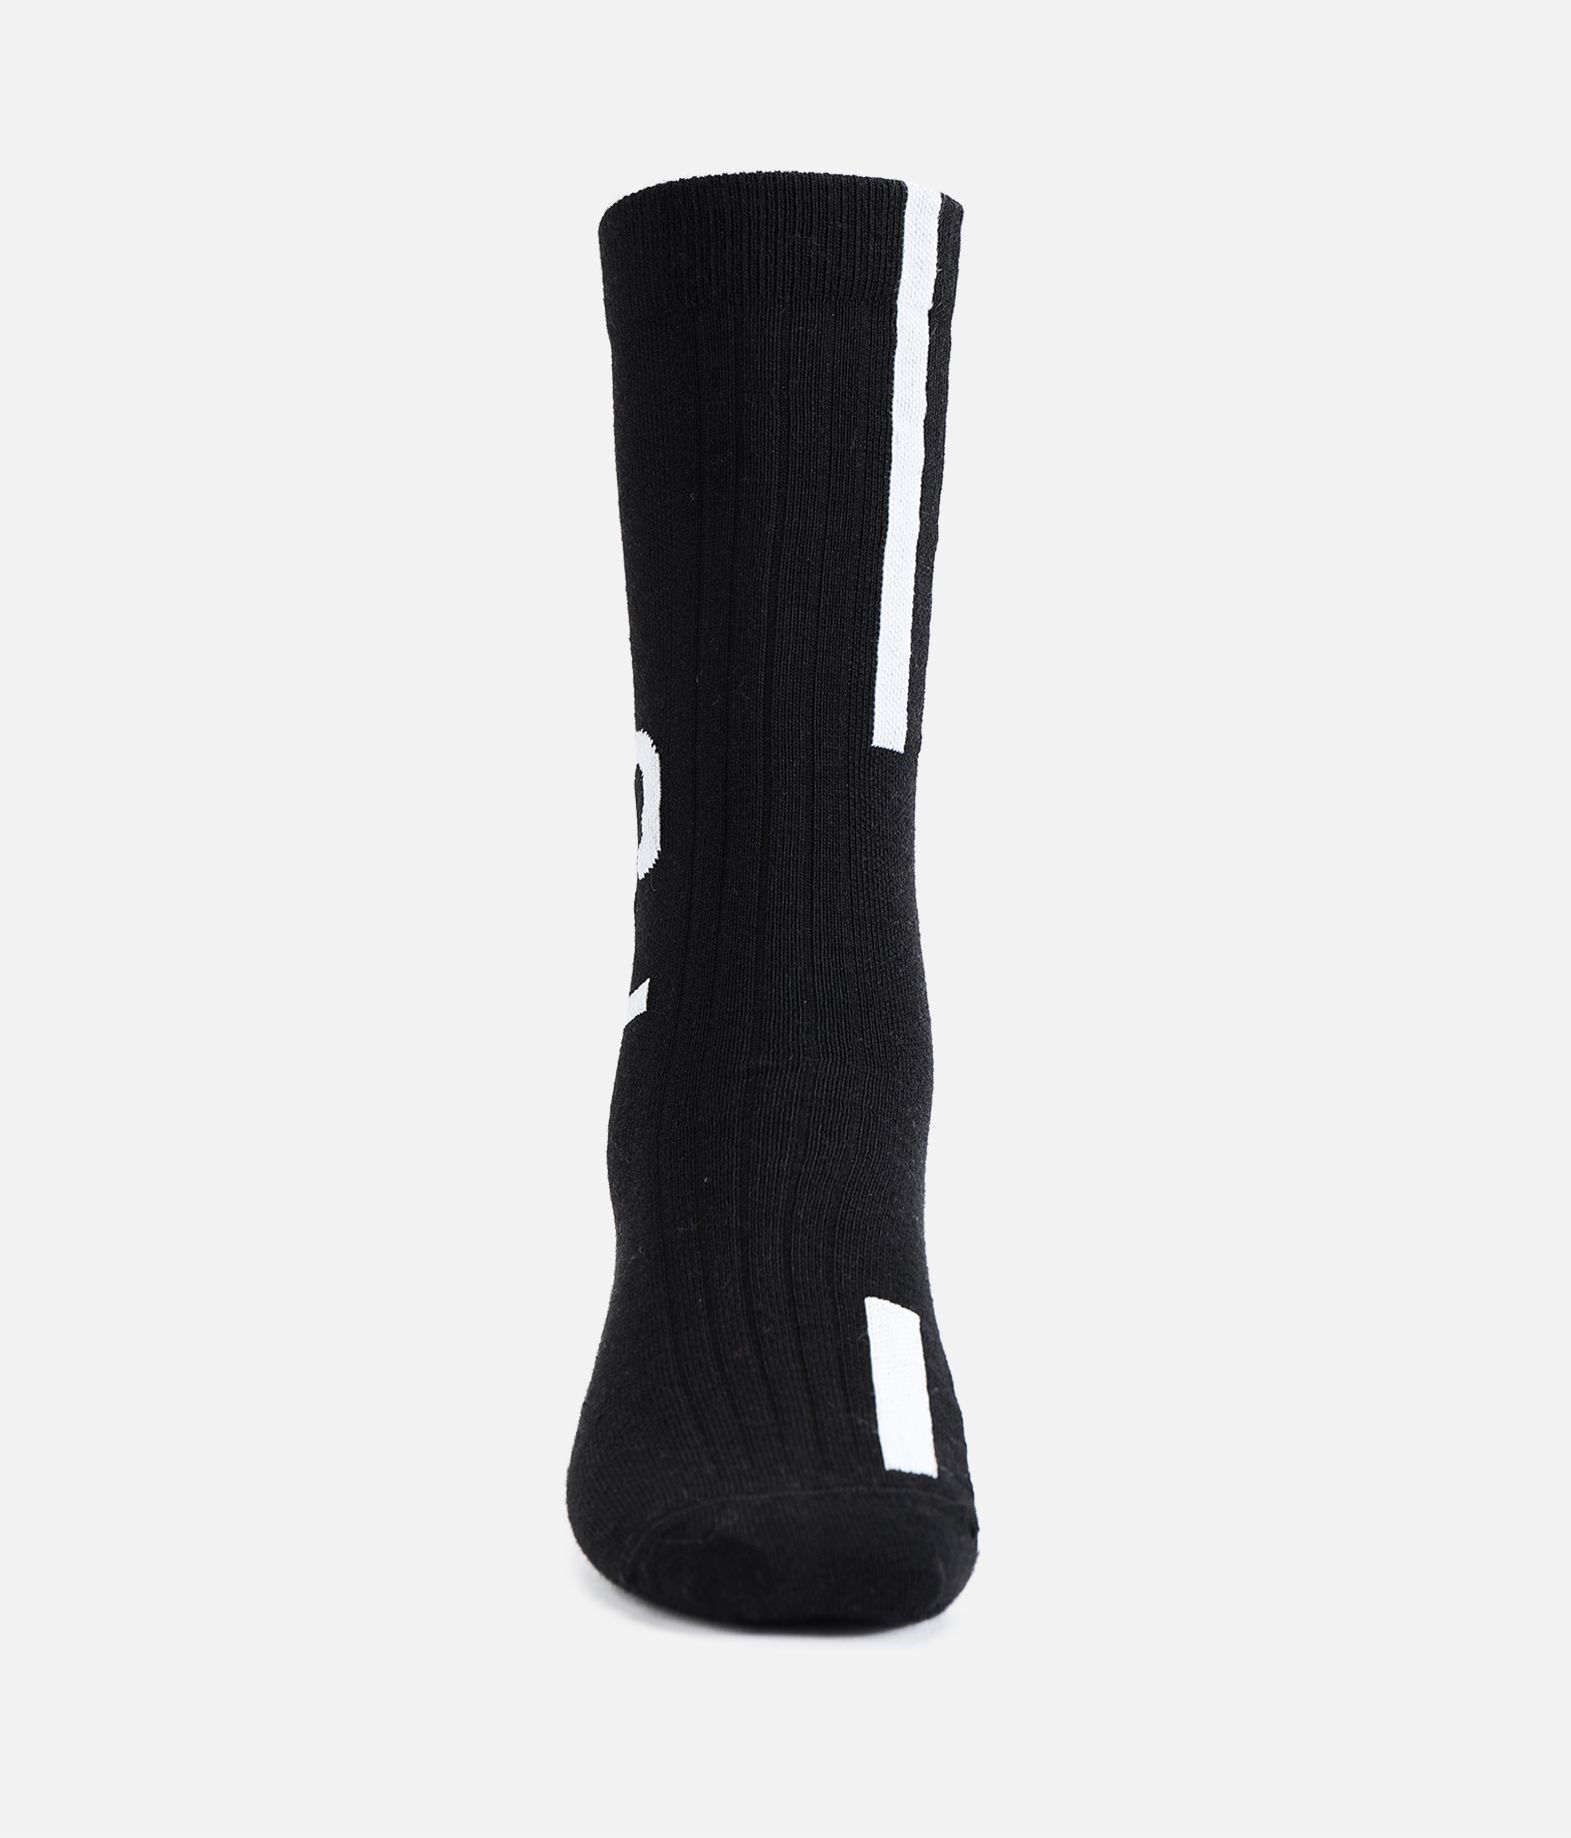 Y-3 Y-3 Wool-Nylon Socks Calzini E r